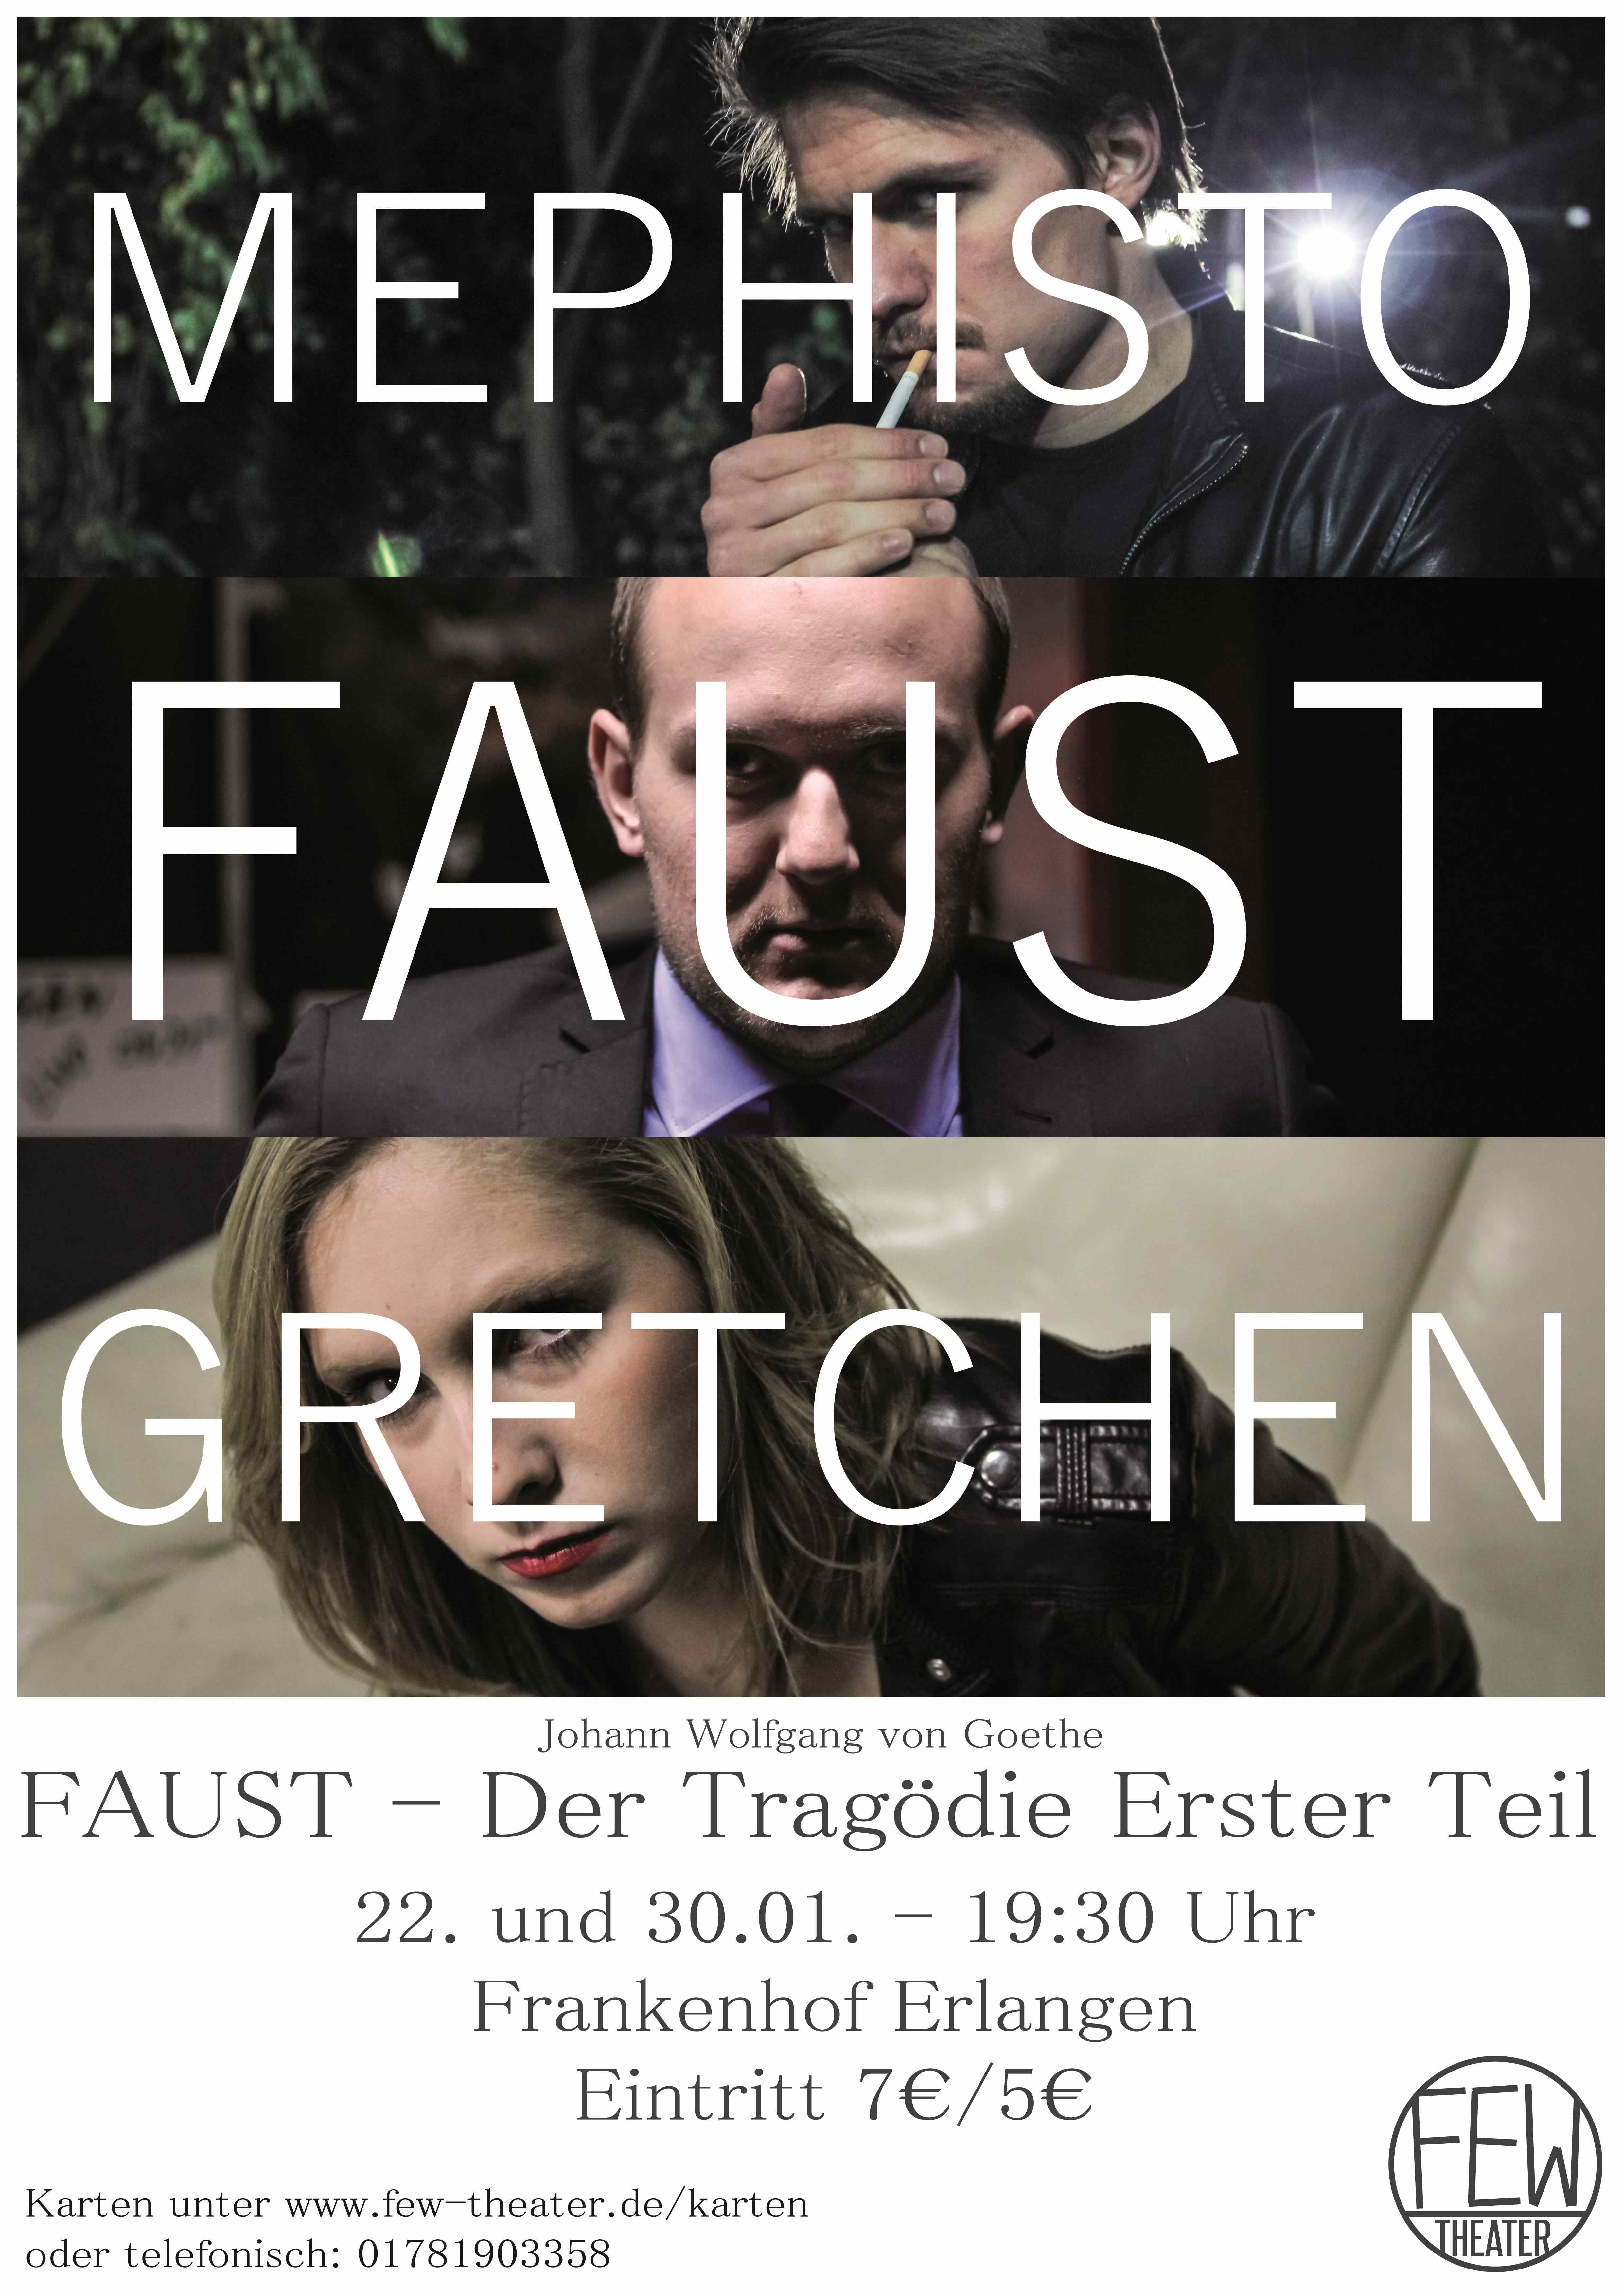 essay faust goethe In the play faust by johann goethe, gretchen's character envelops extreme aspects of virgin mary and of eve mary acts as the symbol of the mother of mankind.